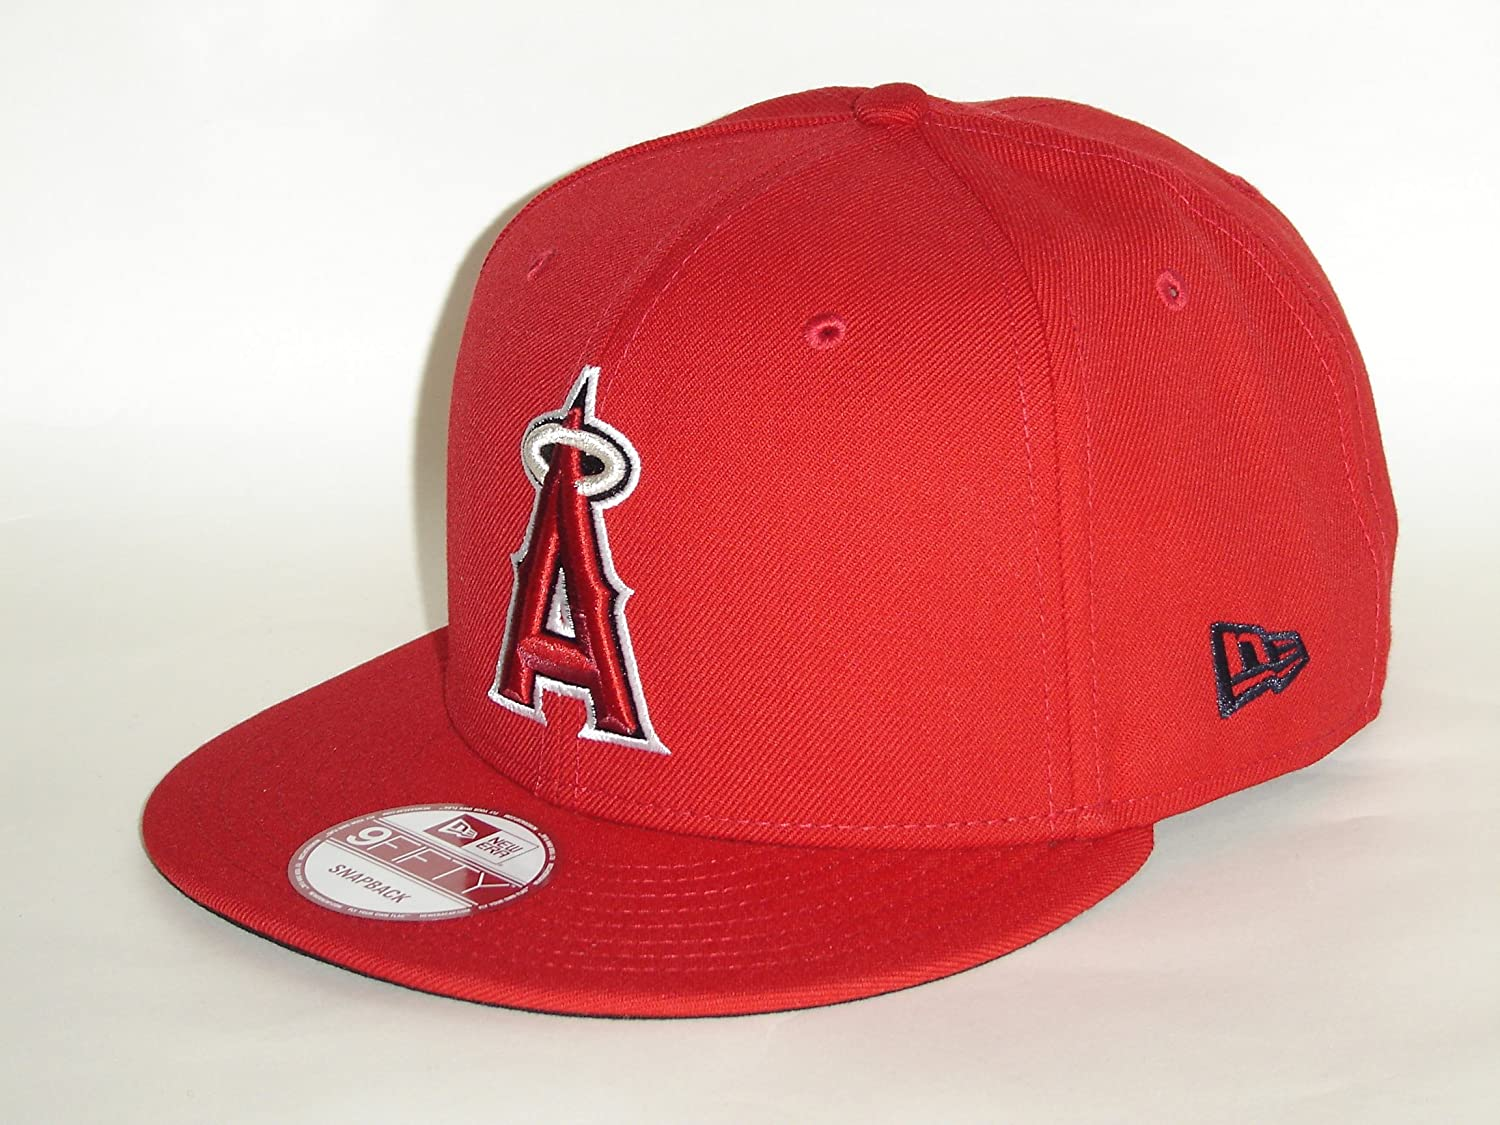 buy online cfce0 01ca2 ... official store amazon new era mlb los angeles angels of anaheim red snapback  cap 9fifty sports